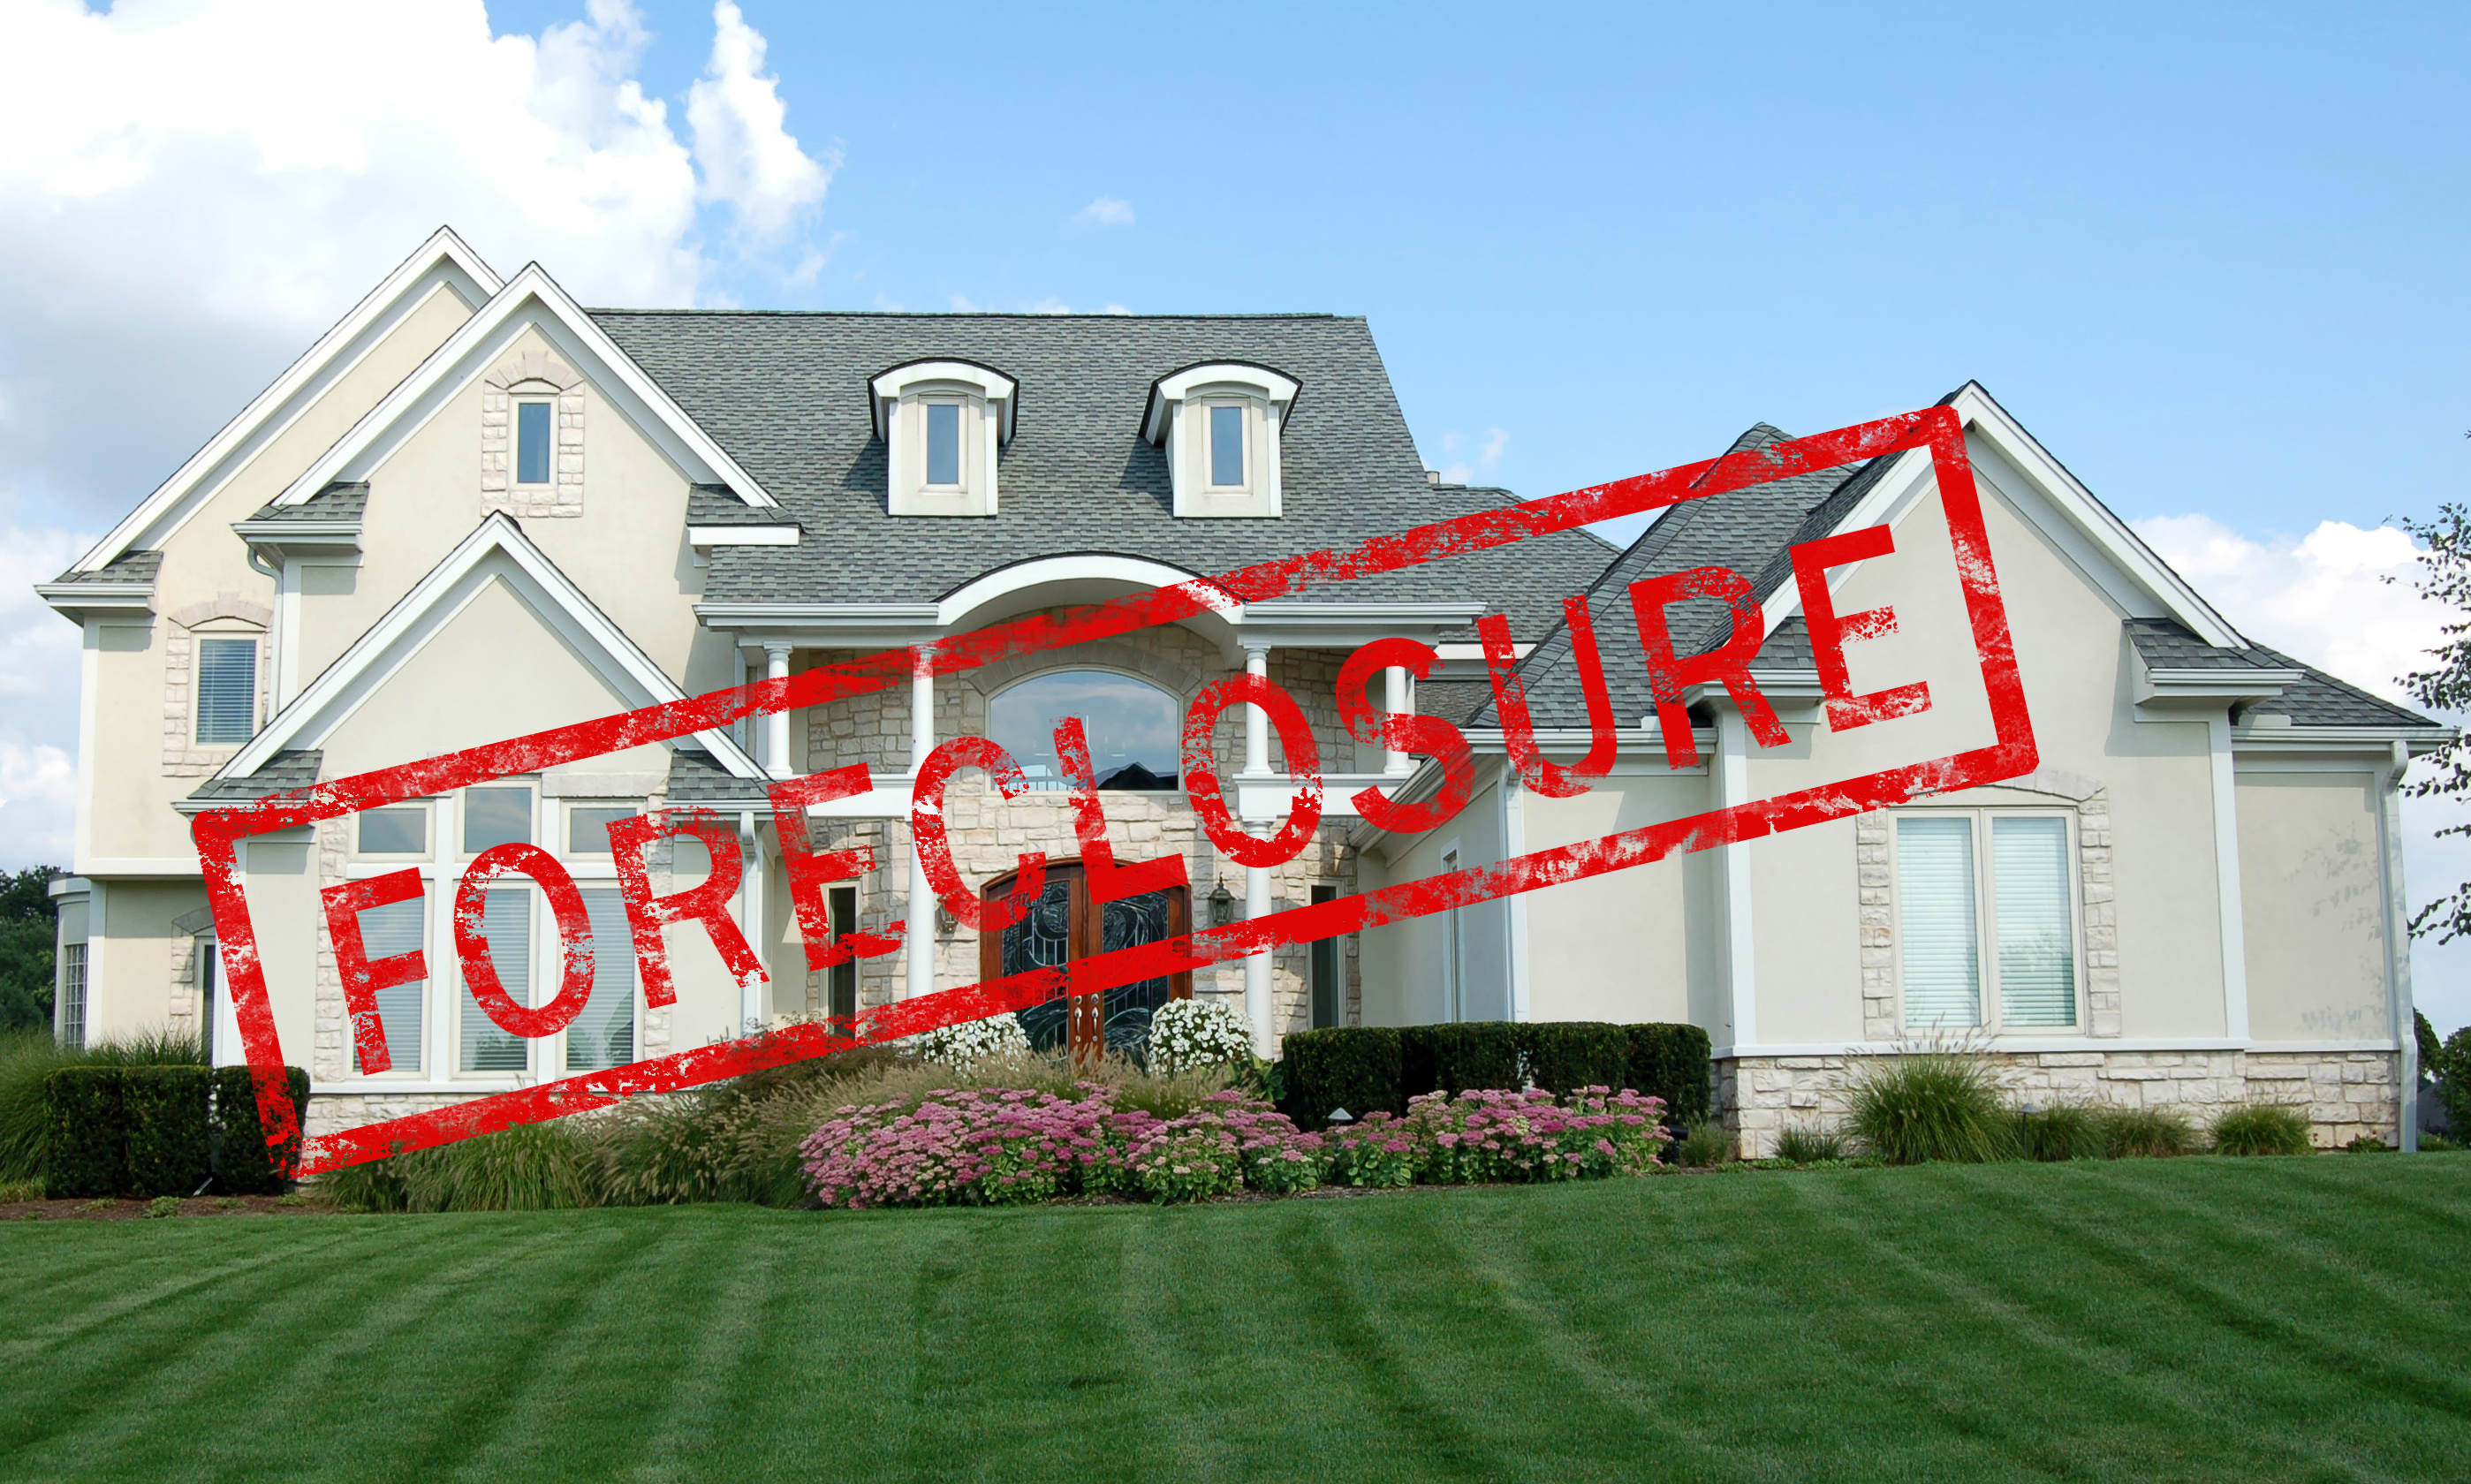 Call Herrin Appraisal Company when you need valuations on Forsyth foreclosures